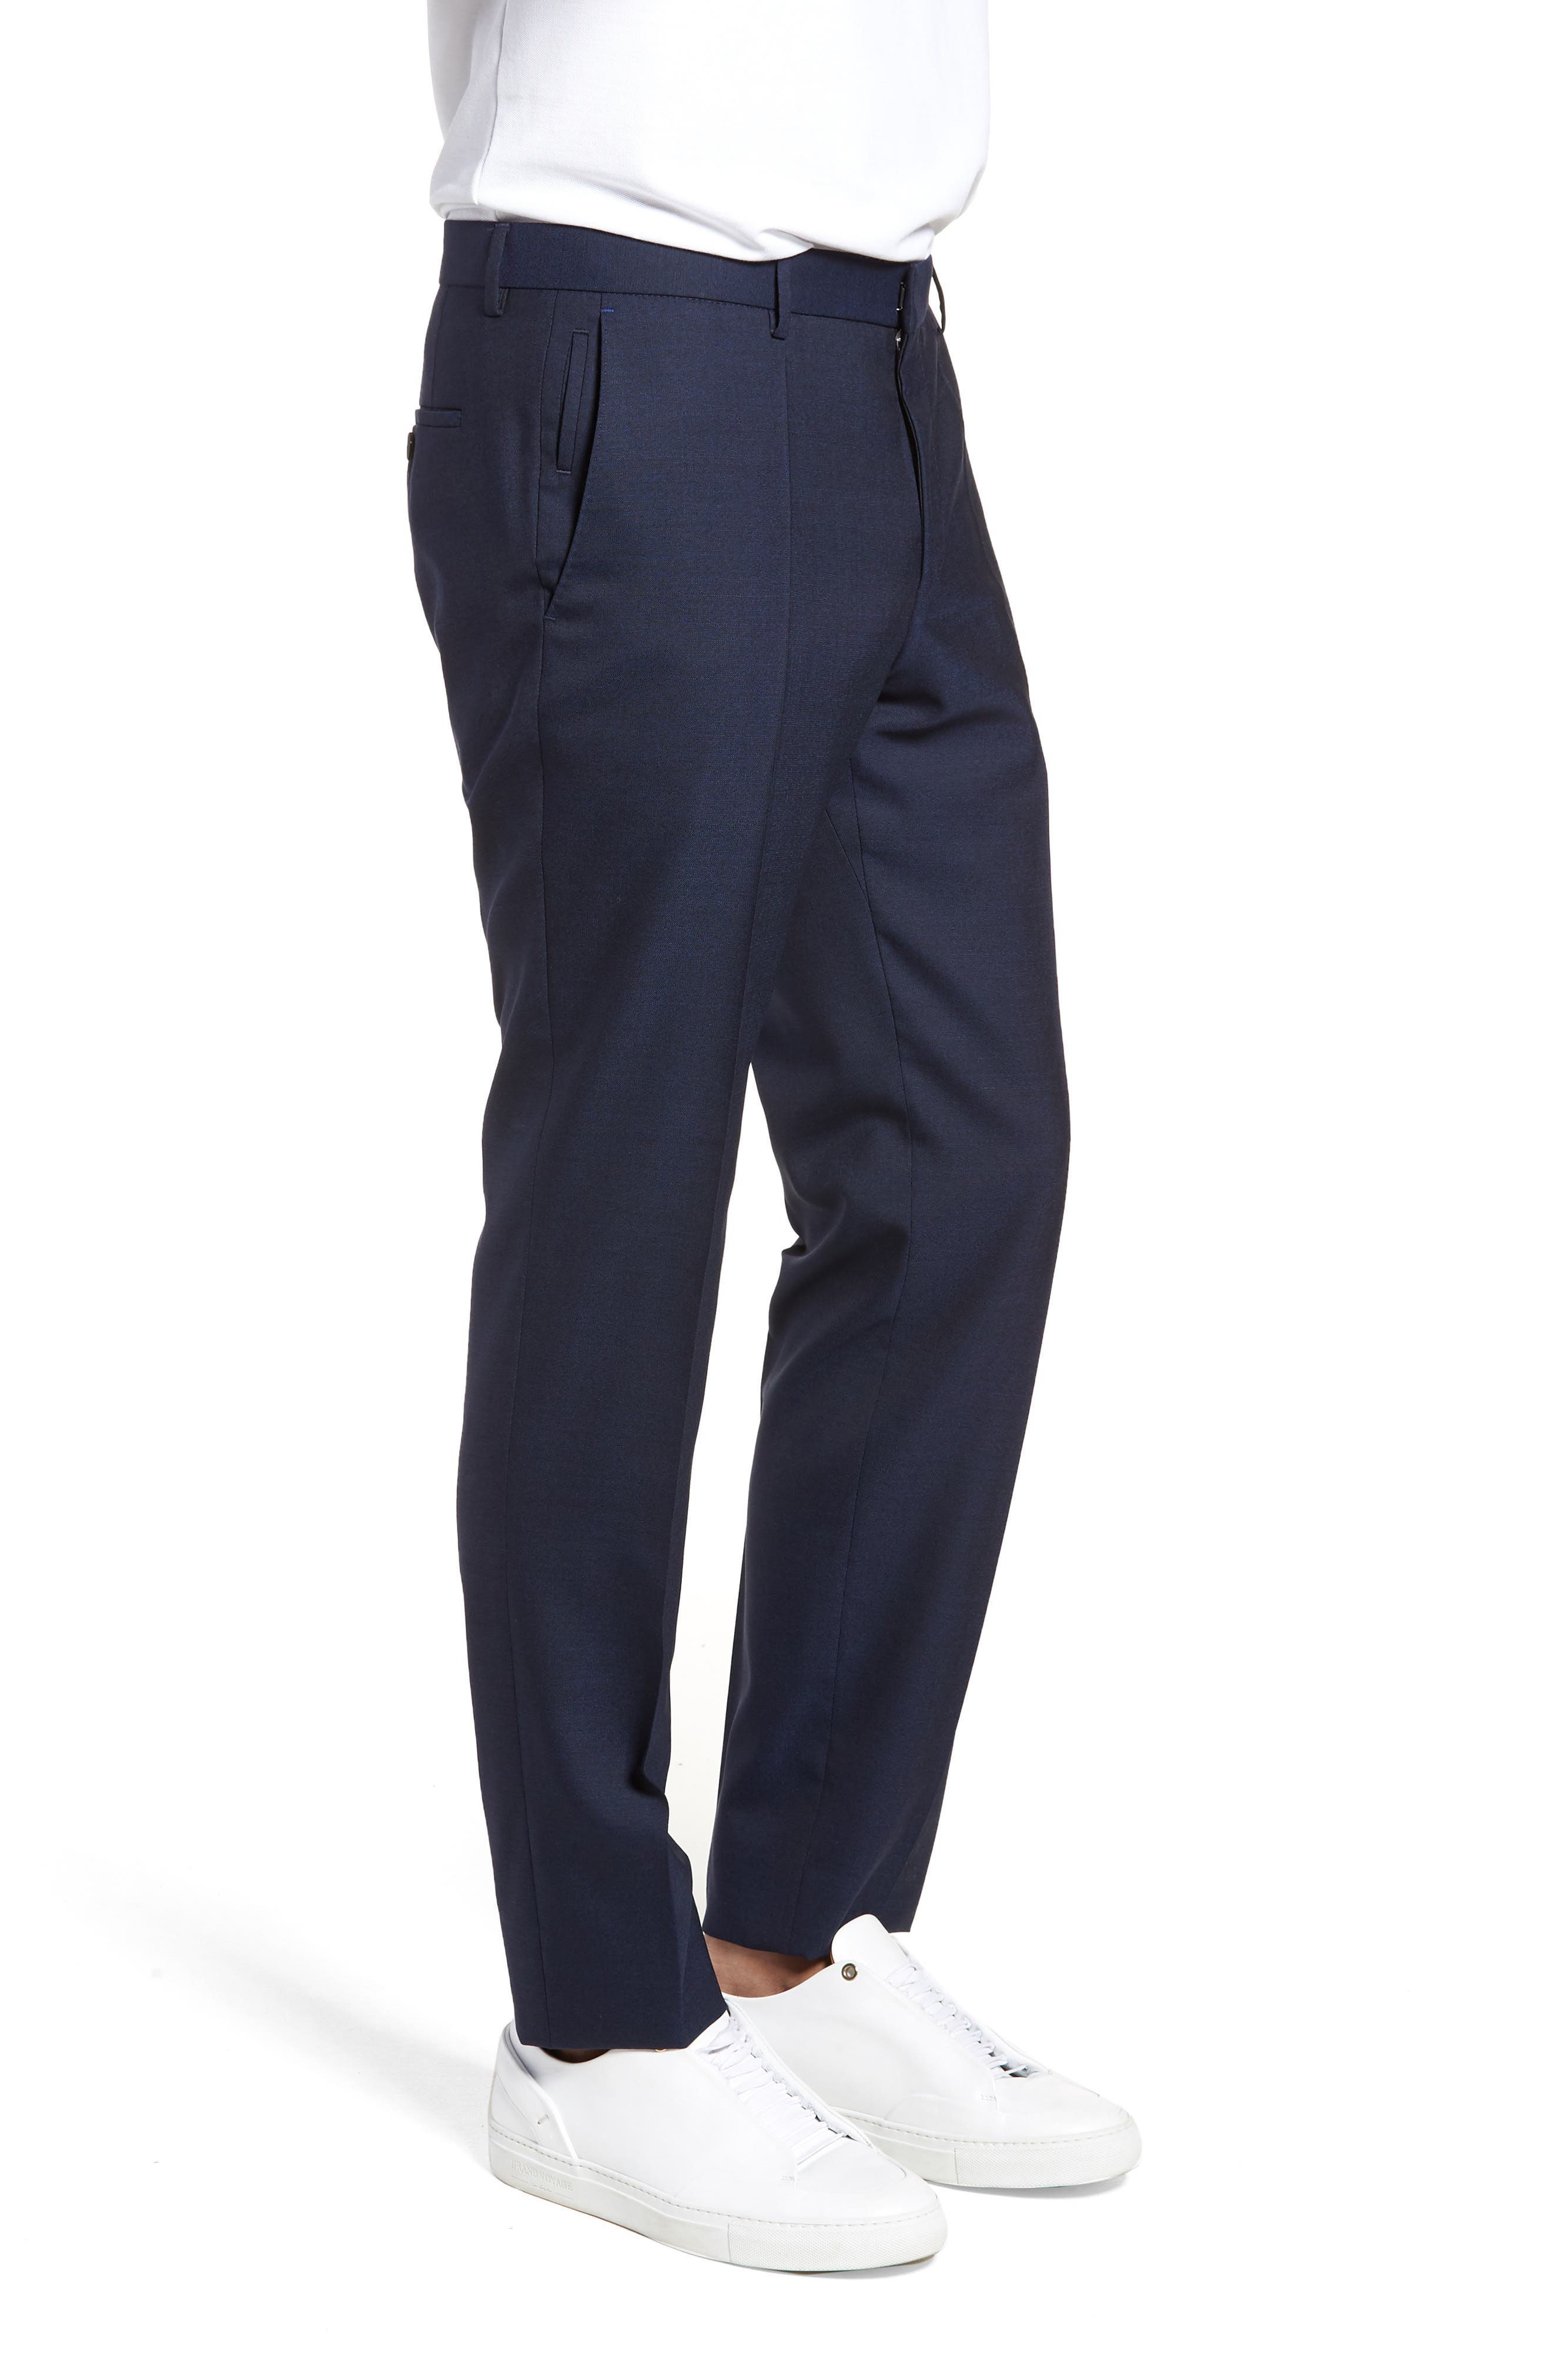 Nordstrom x BOSS Ben Flat Front Solid Wool Trousers,                             Alternate thumbnail 3, color,                             410